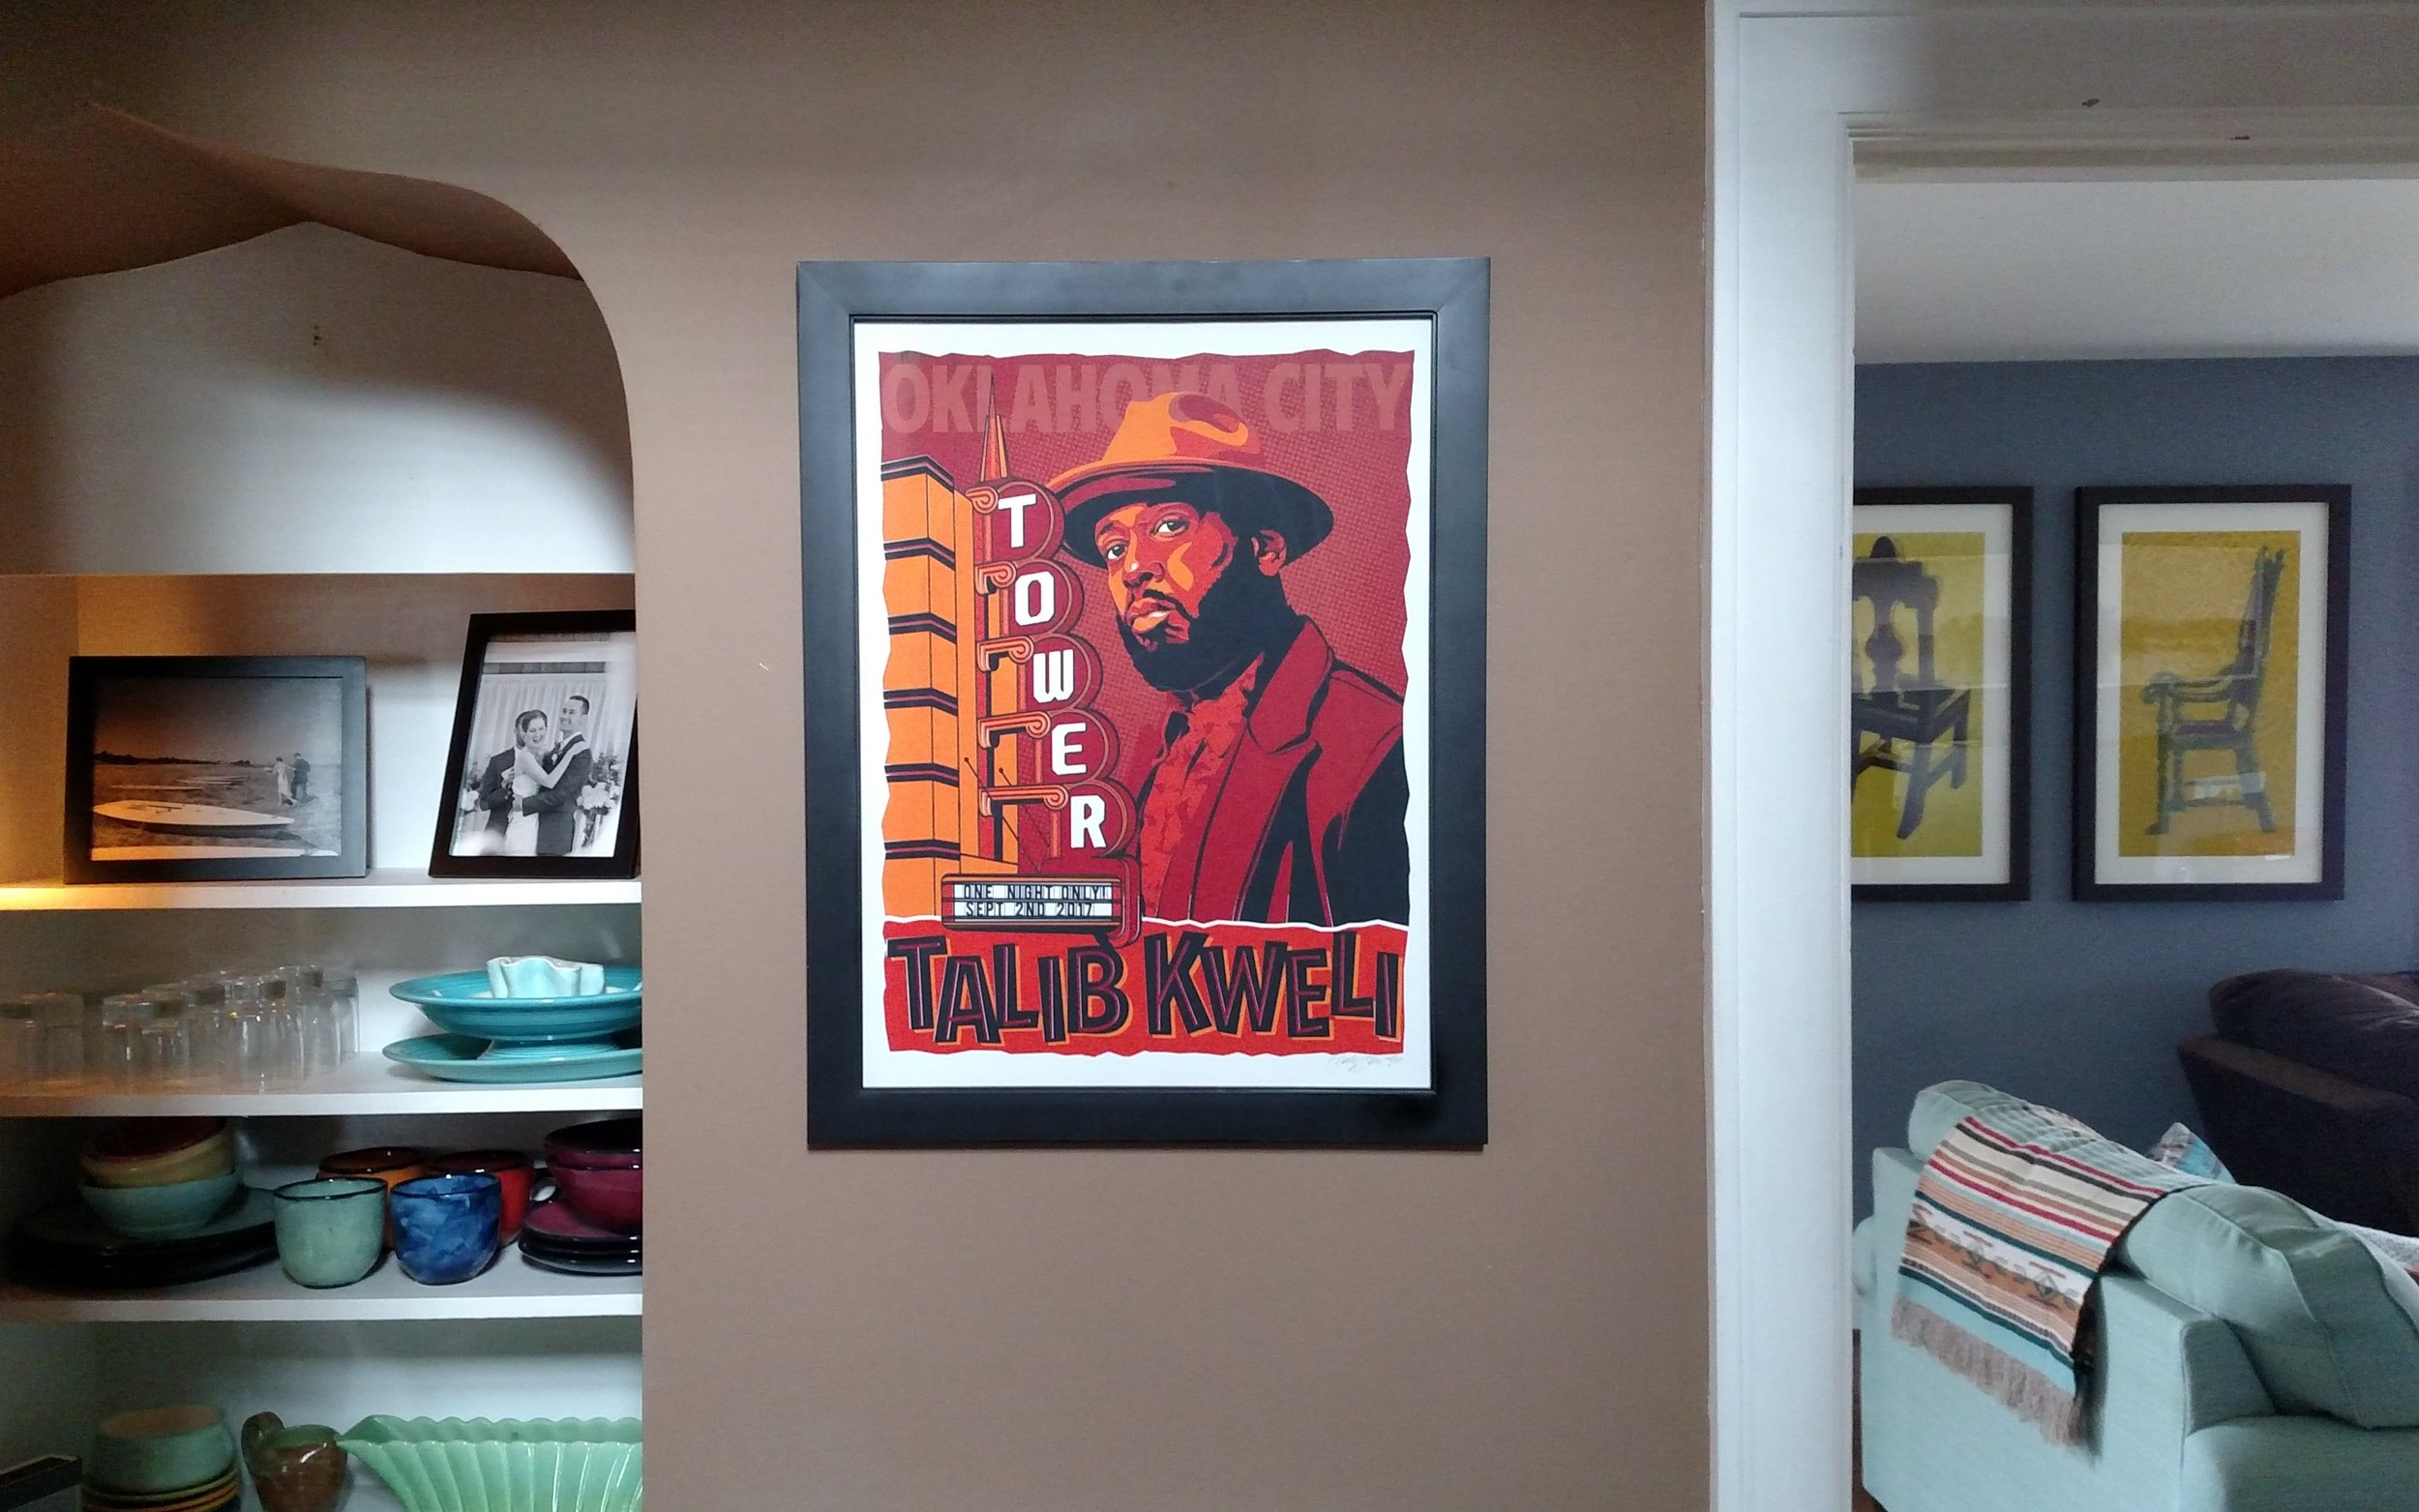 This is a limited edition screen print. We love this rapper and went to this concert on our anniversary. We framed it in a cheapo frame from Wal-Mart or something.